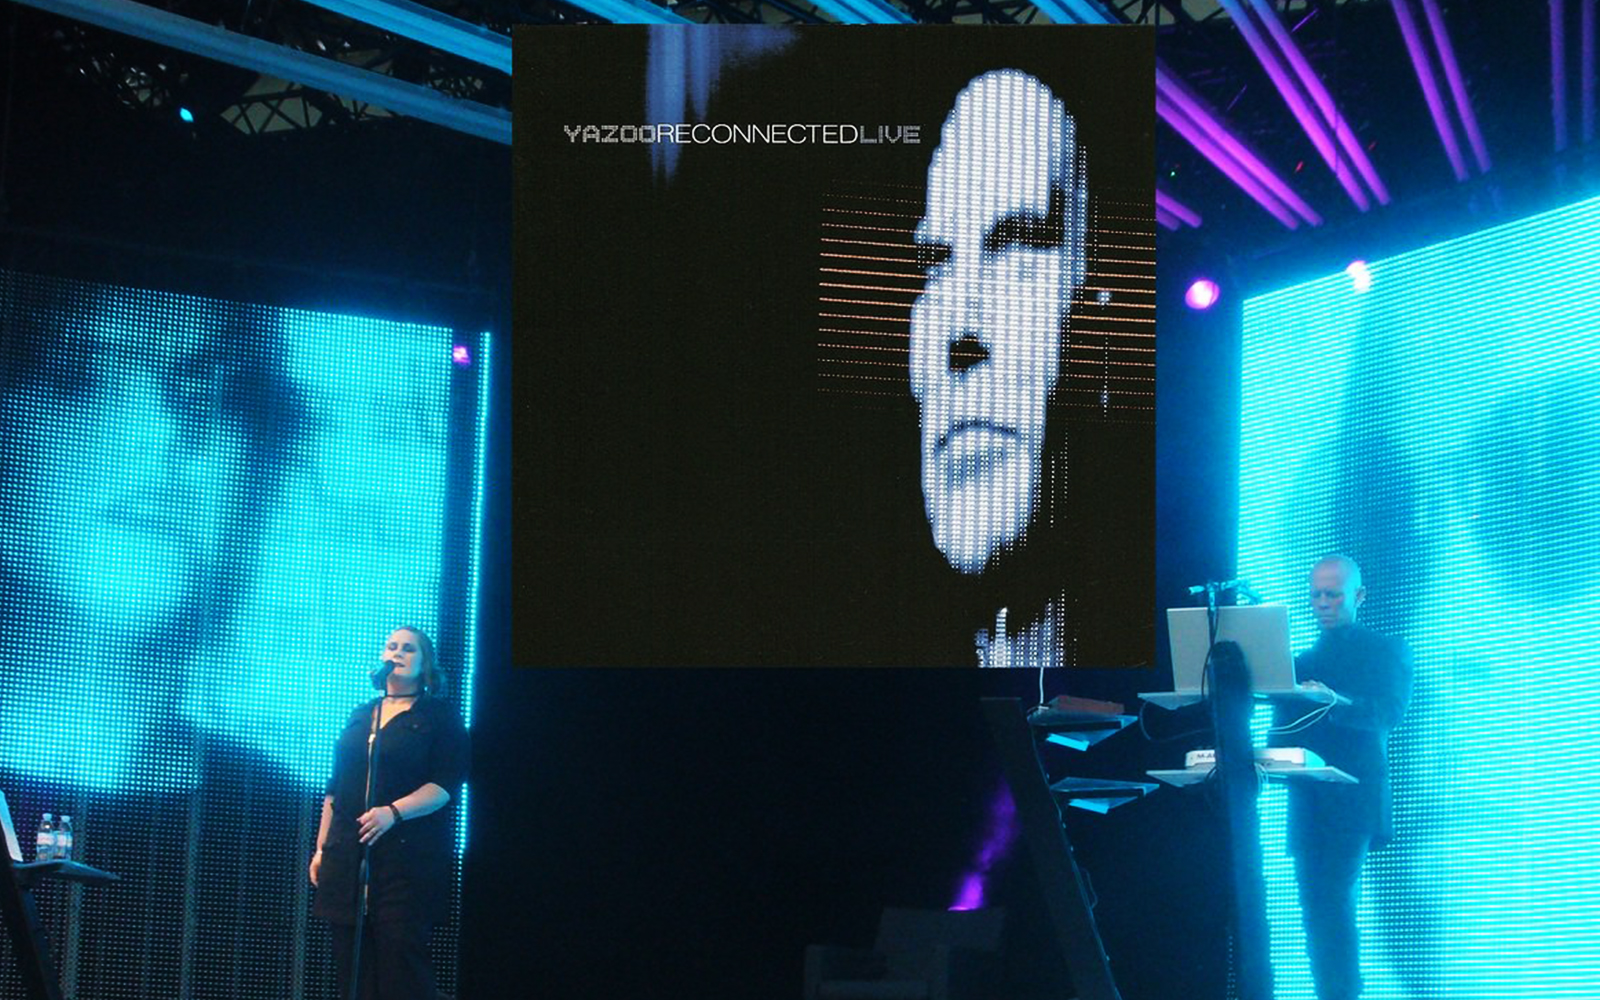 Reconnected Live coming on vinyl